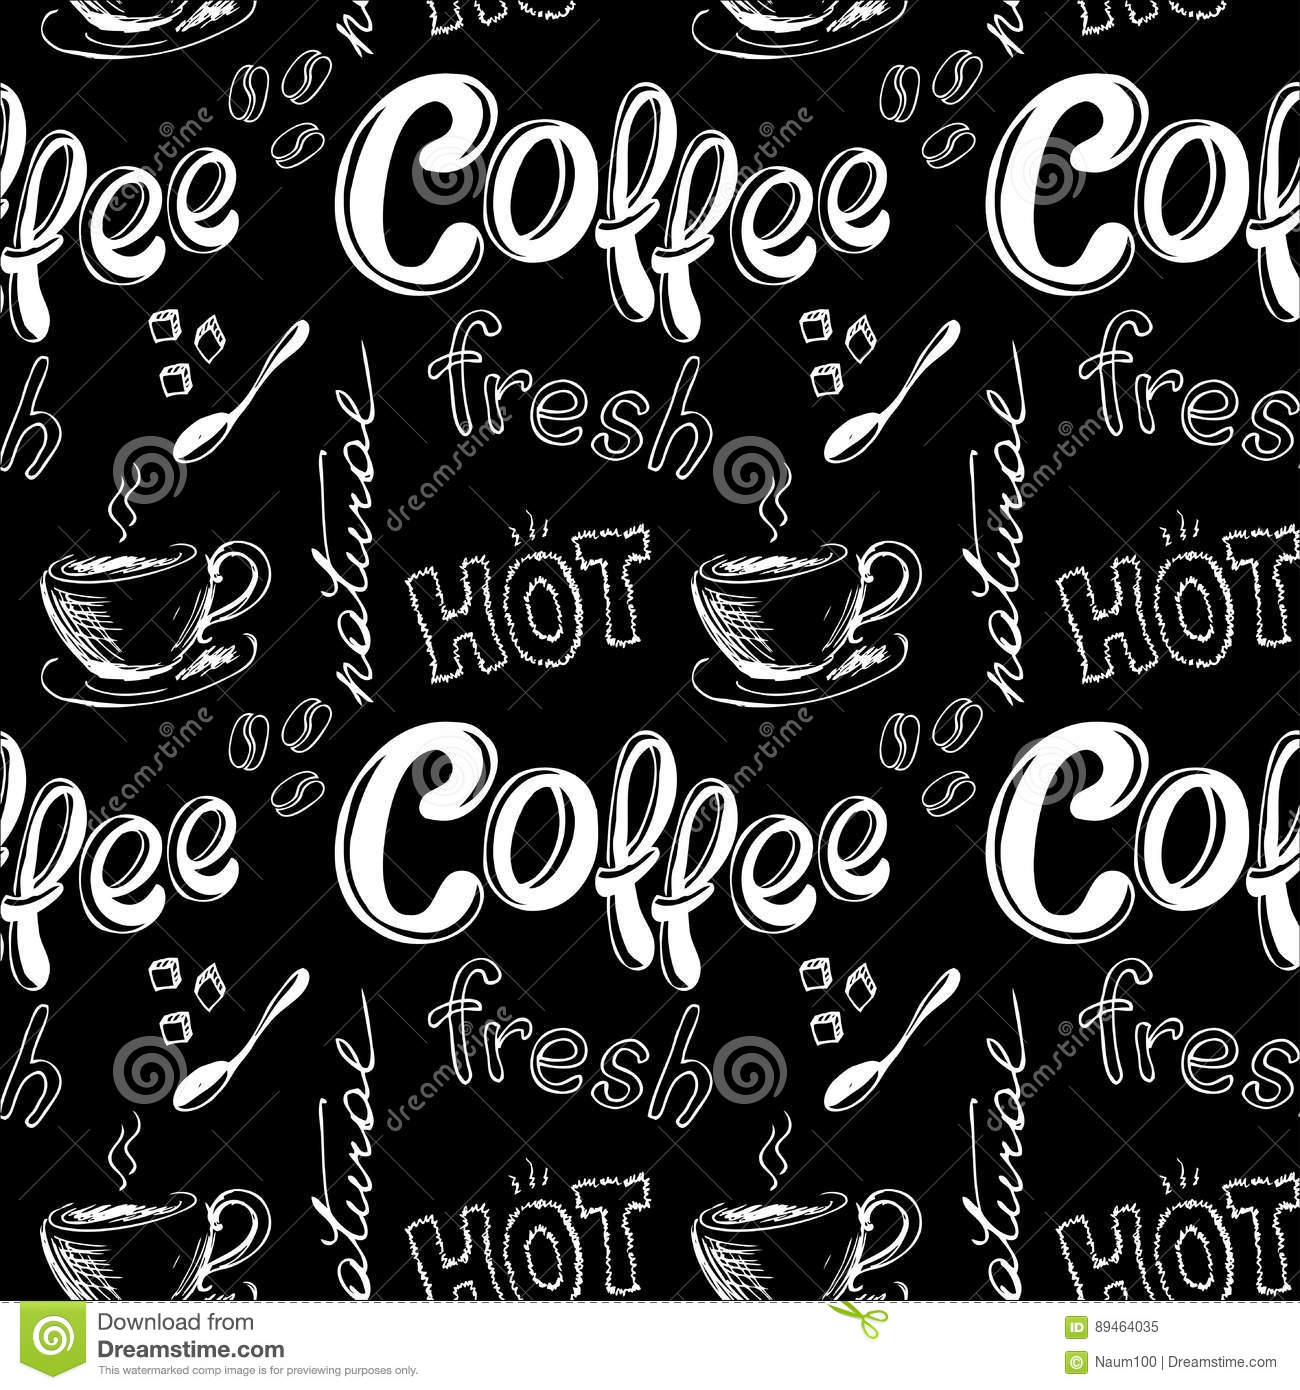 seamless doodle coffee pattern - photo #11